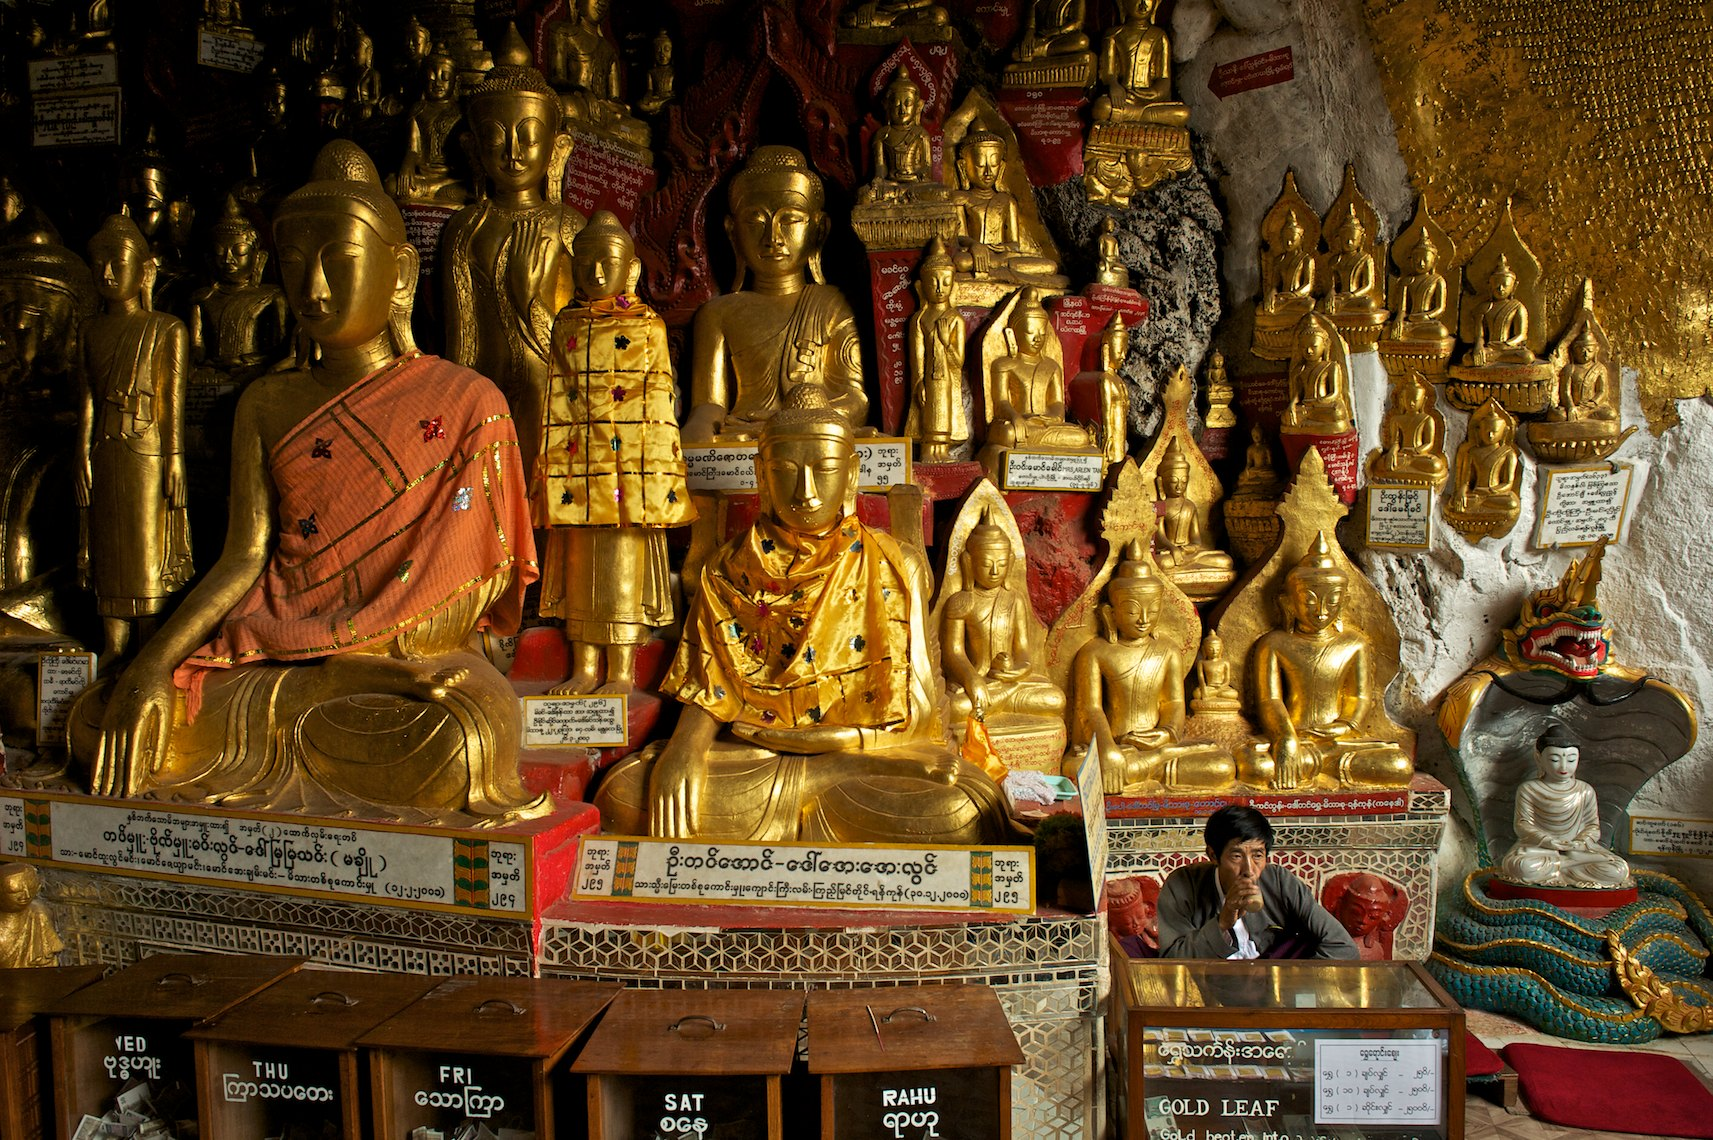 Barth_Burma_Near_Inle 005.jpg